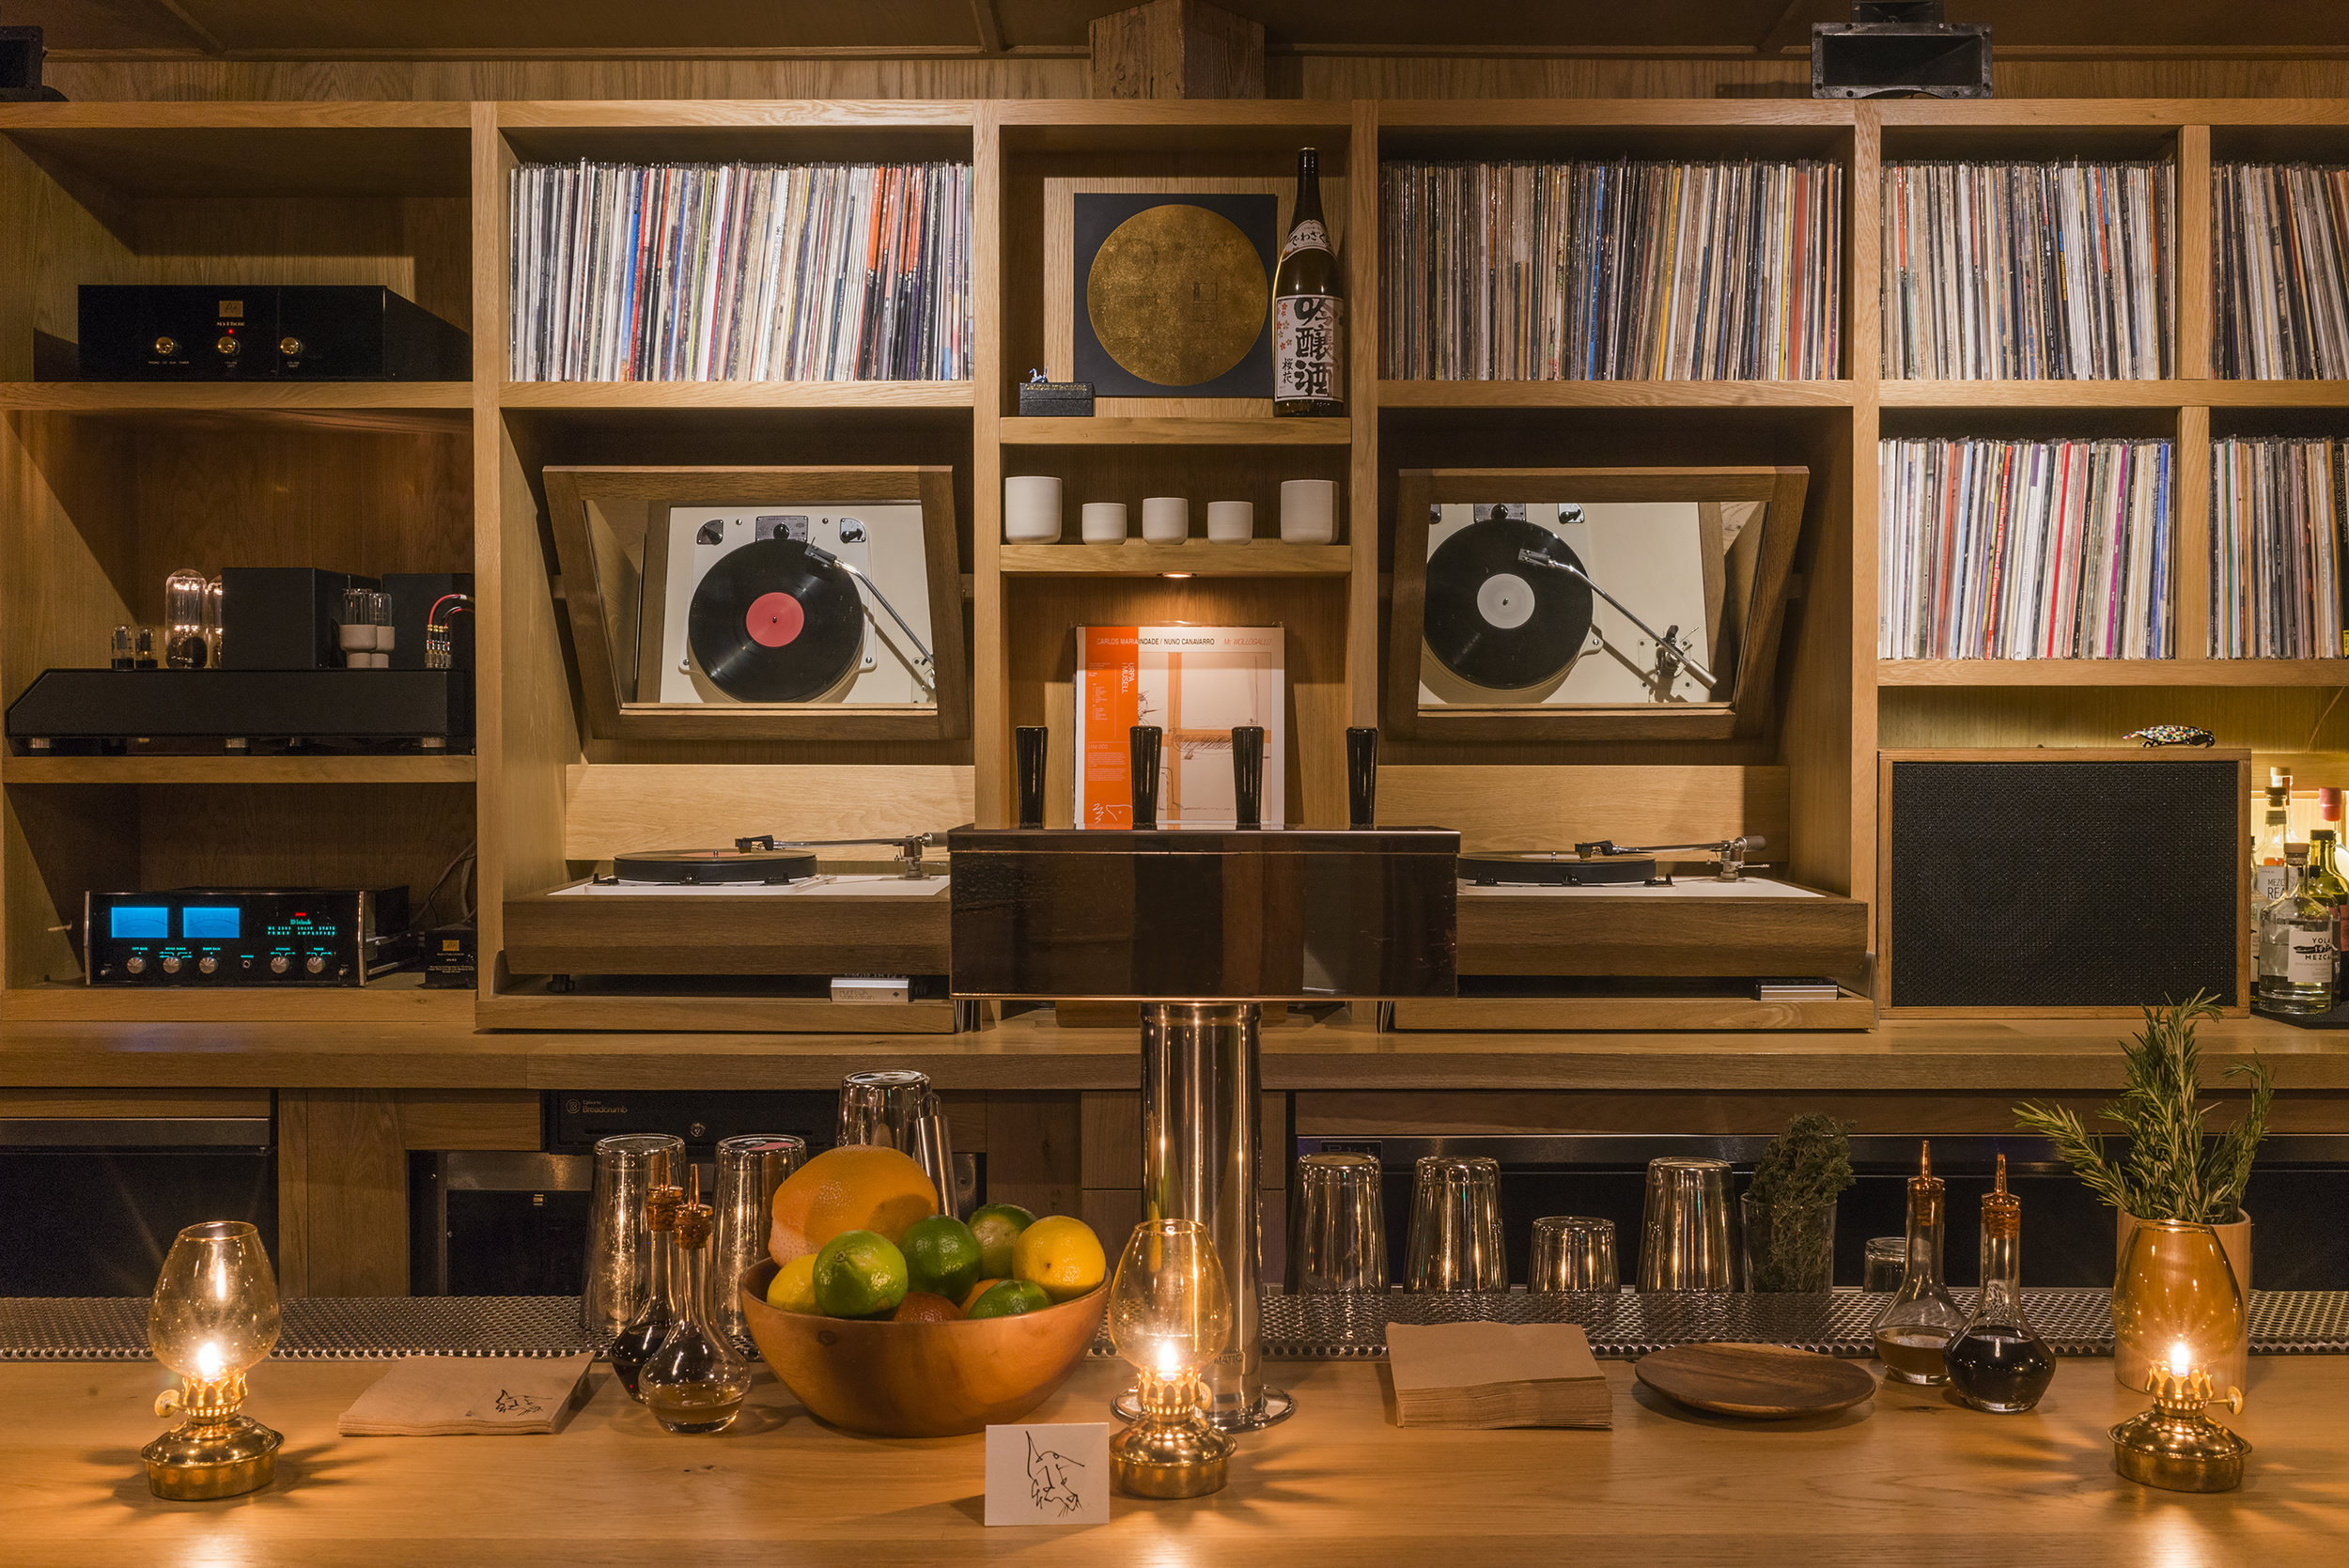 Instead of a wall of alcohol bottles, the bar In Sheep's Clothing proudly shows off its vinyl collection.Photo credit: Jersey Walz